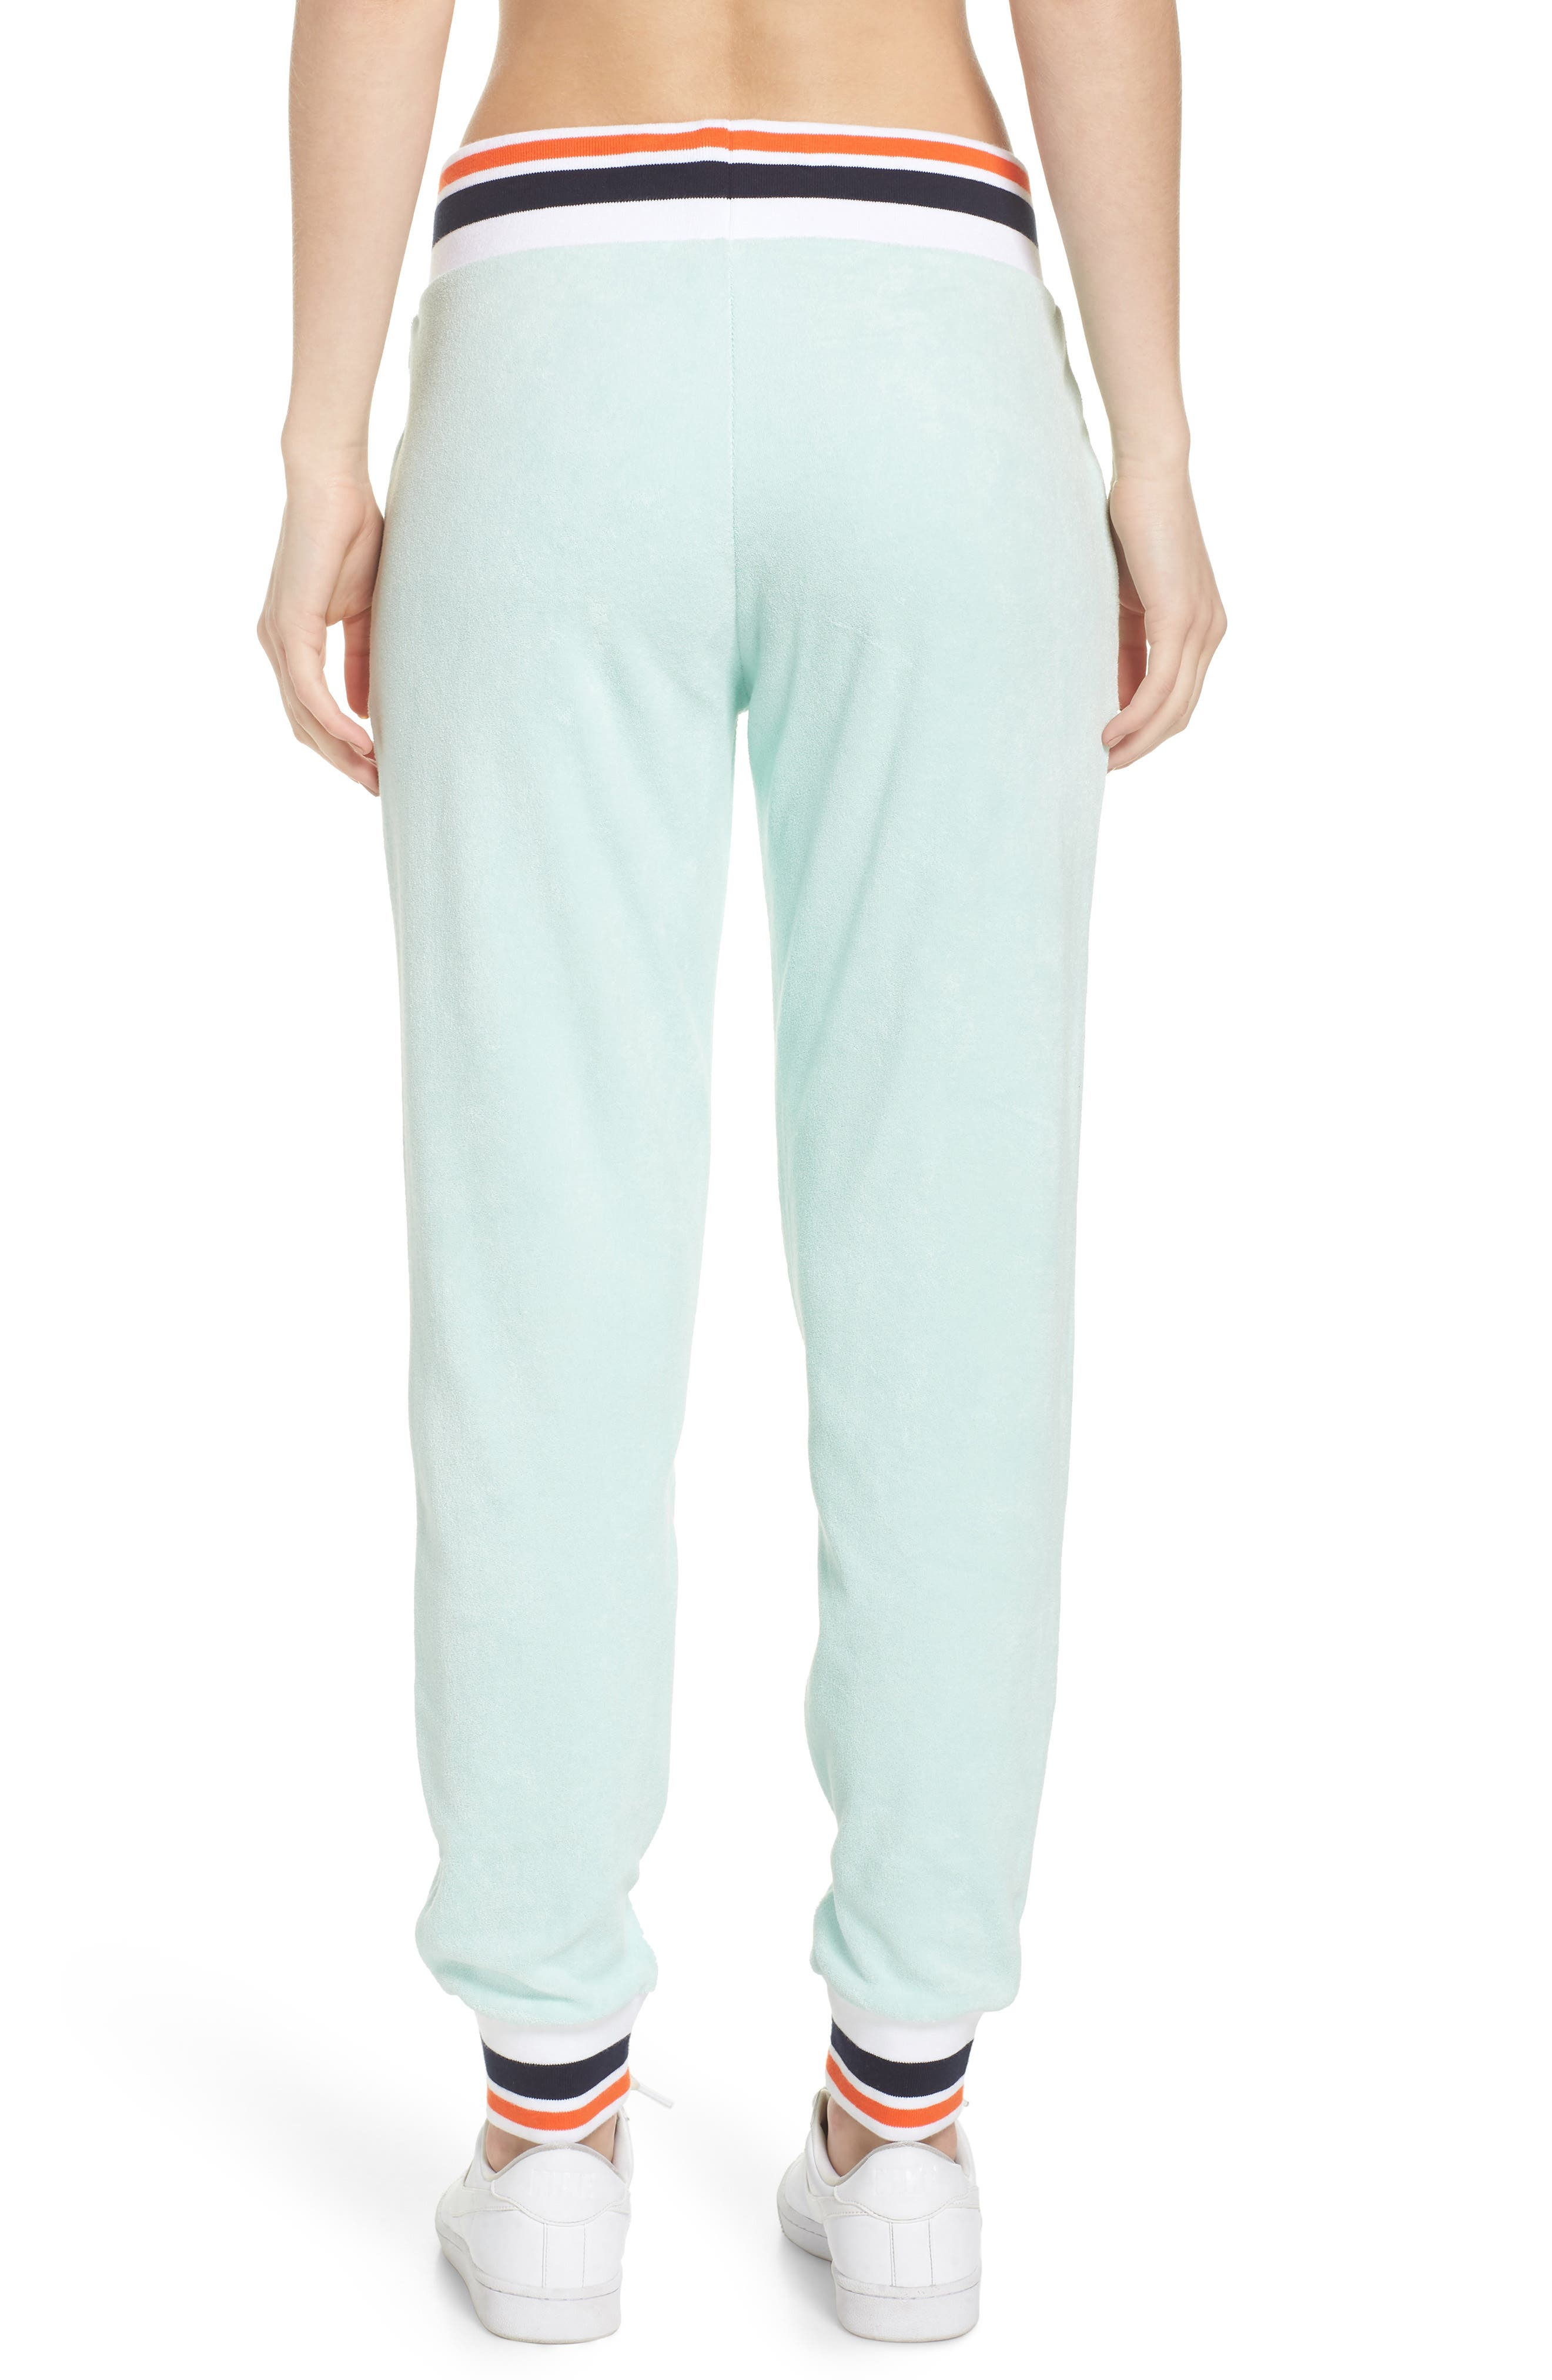 Sportswear French Terry Pants,                             Alternate thumbnail 2, color,                             Igloo/ White